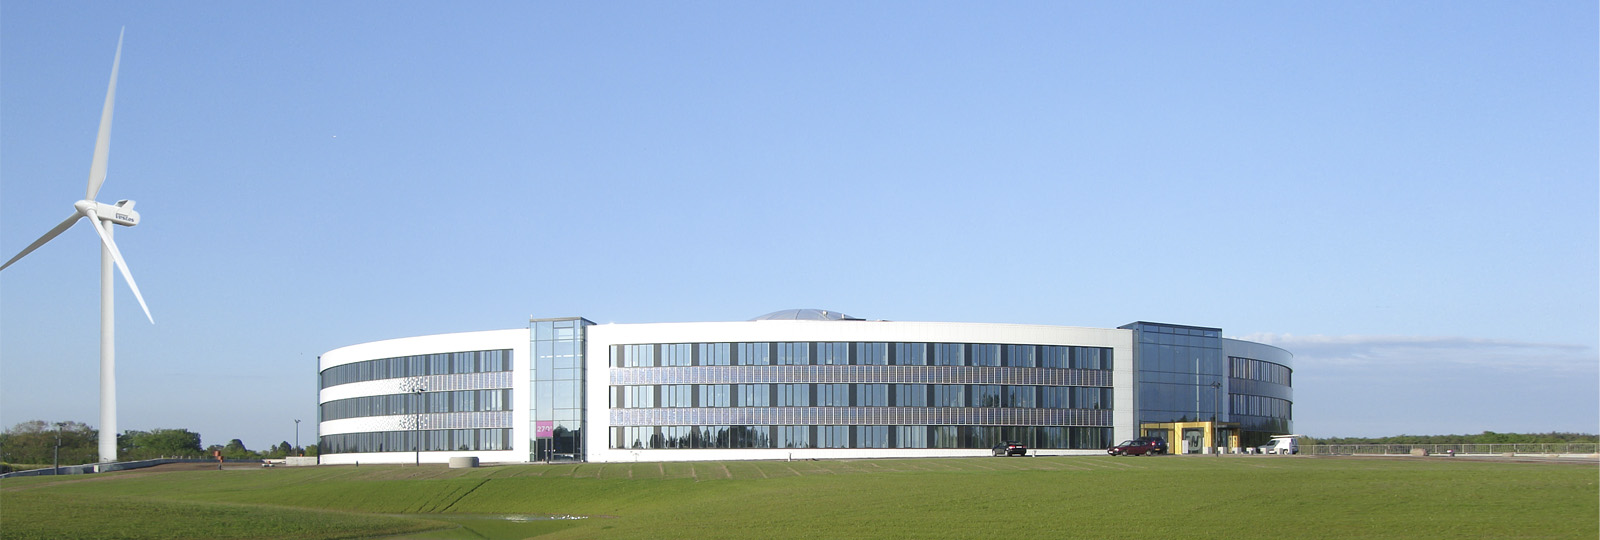 Widex-HQ